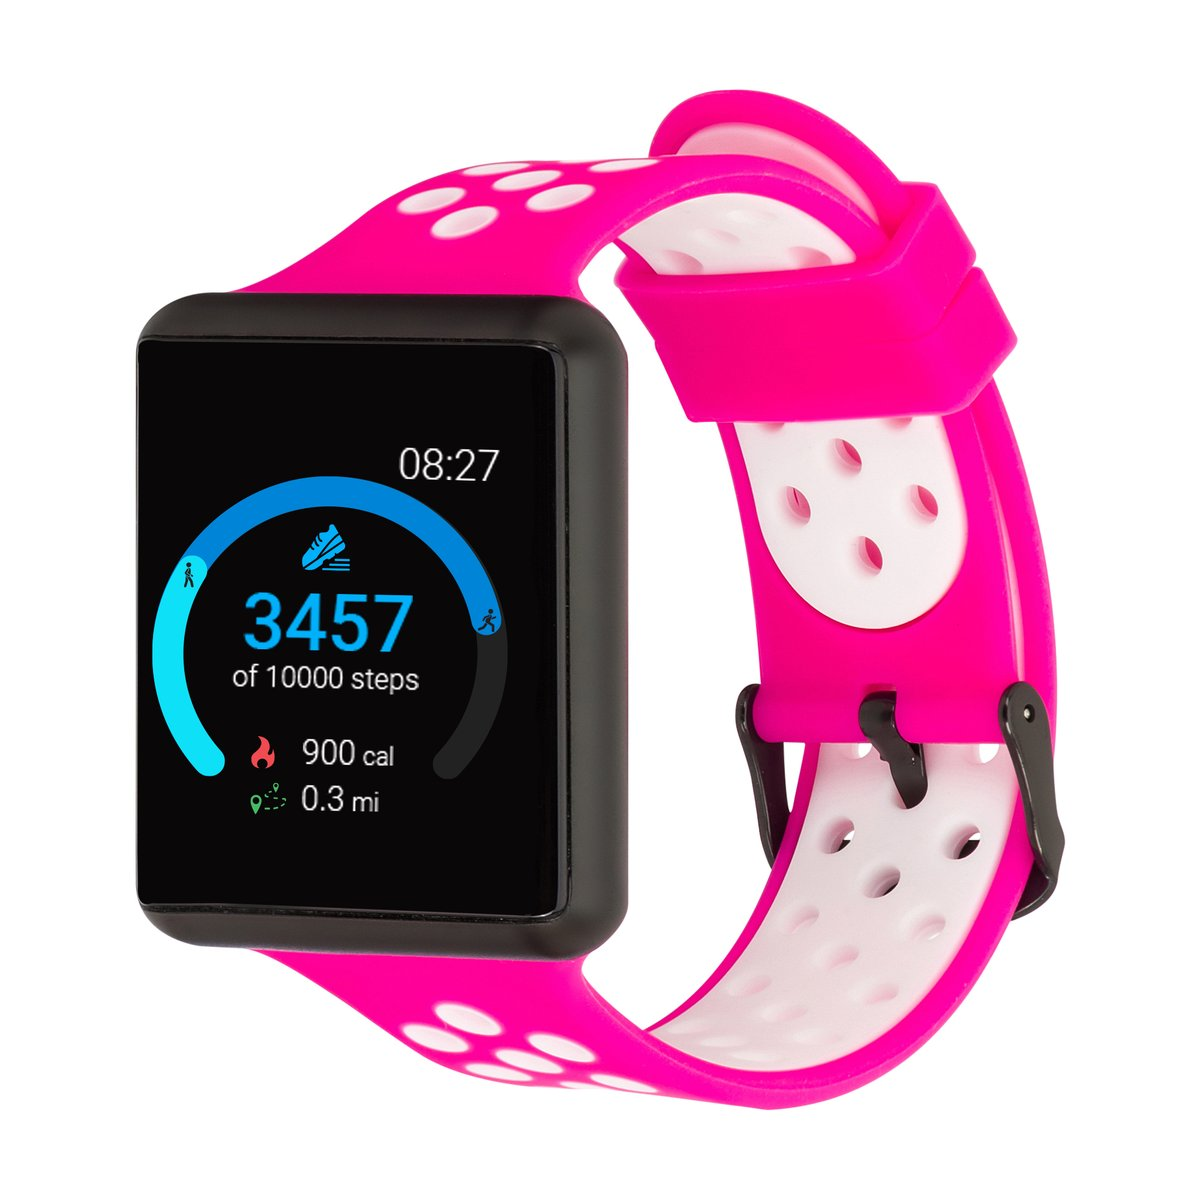 iTouch Air SE Smartwatch: Black Case With Fuchsia/White ...